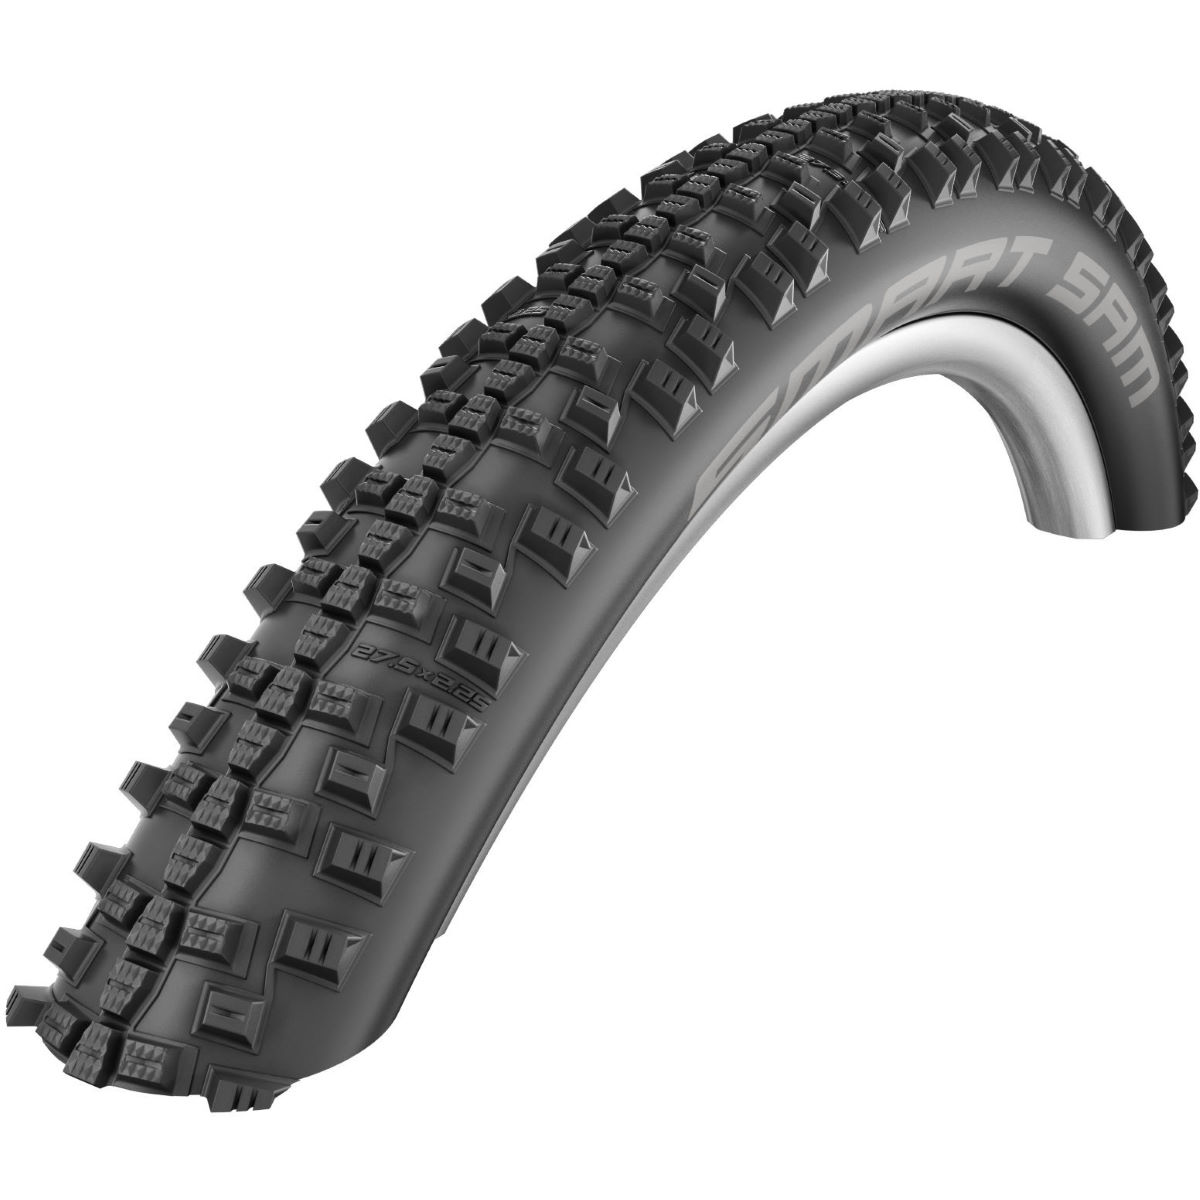 Schwalbe Smart Sam Performance MTB Tyre - 35C 700c Black / Reflex Pneus VTT